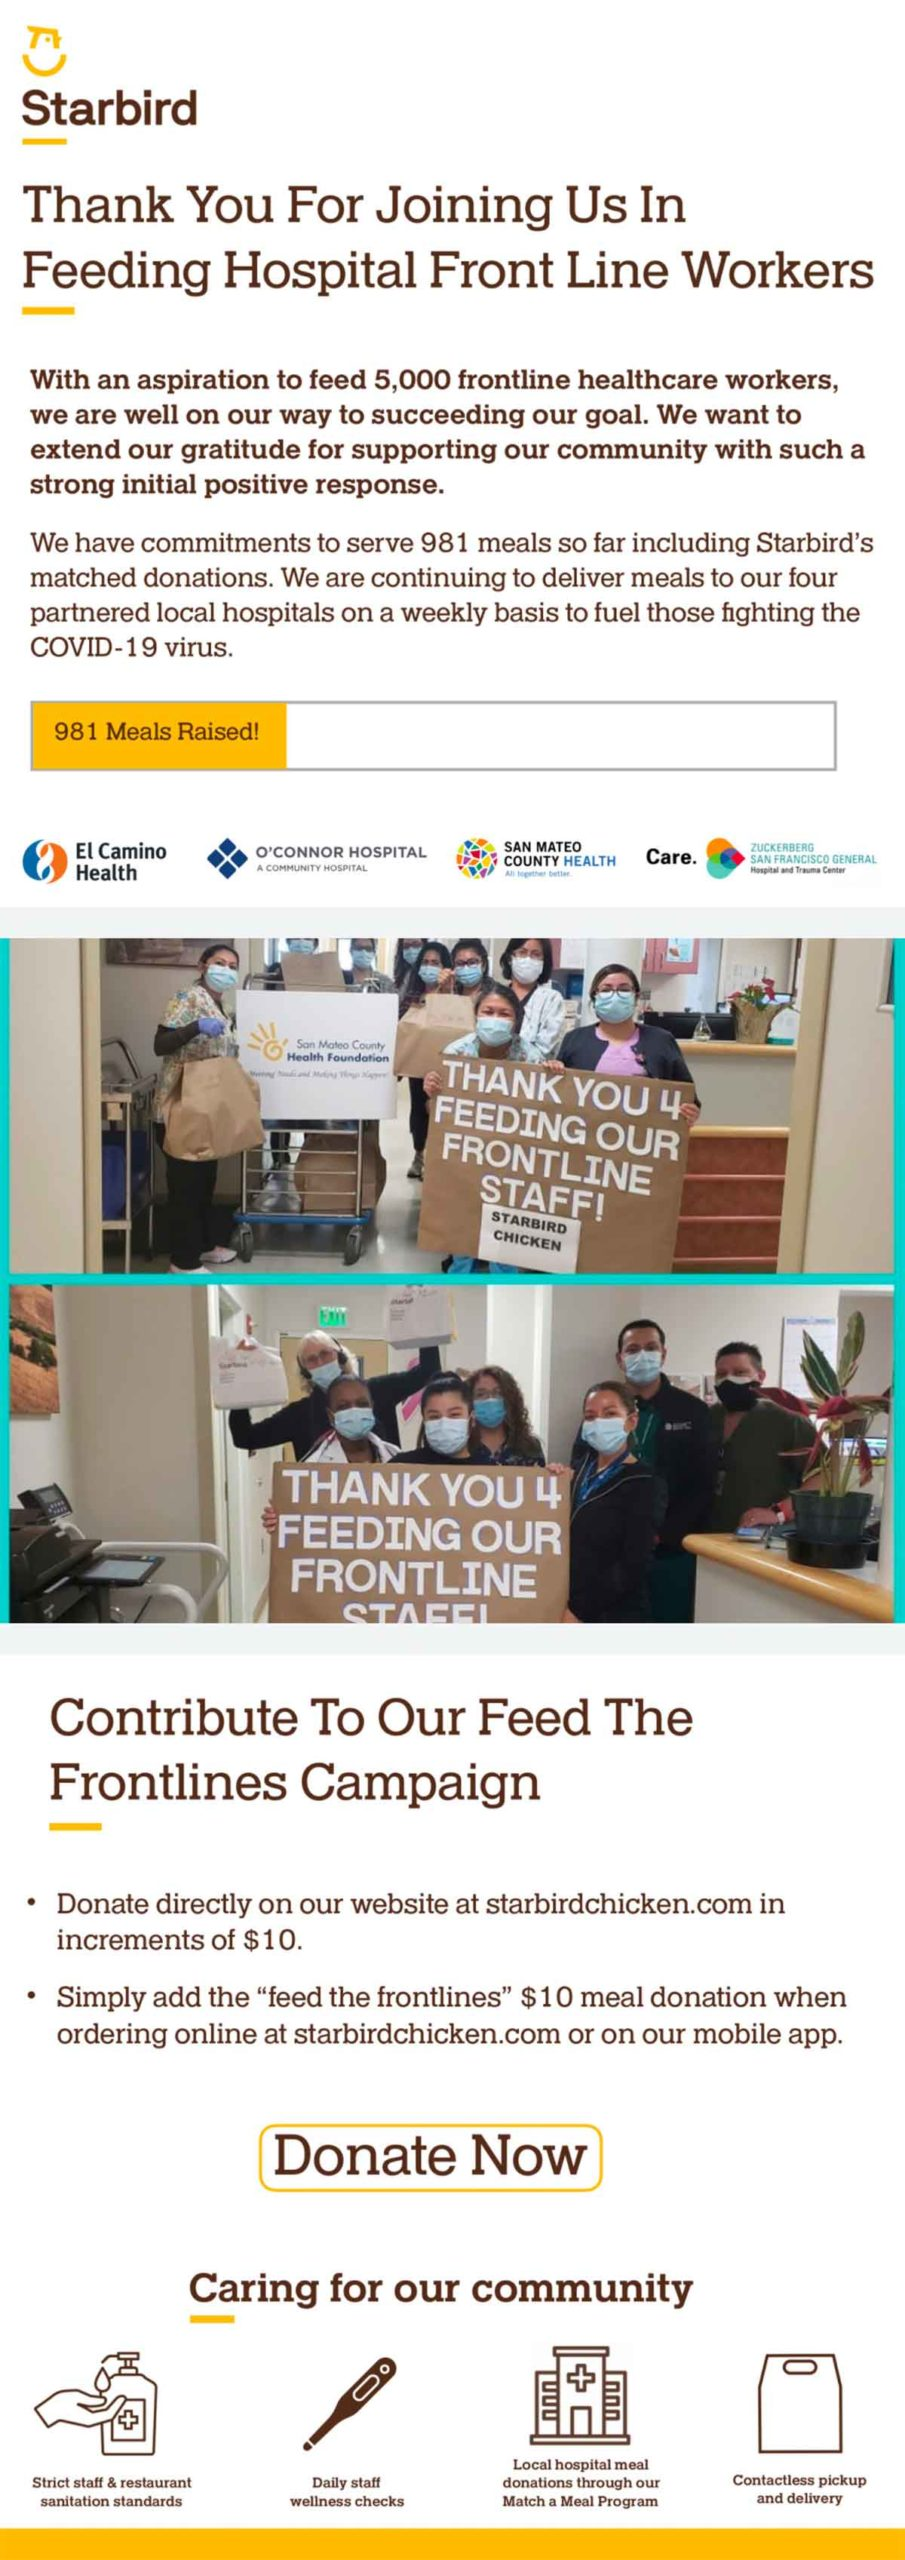 Starbird: Thank You For Feeding Our Frontlines email